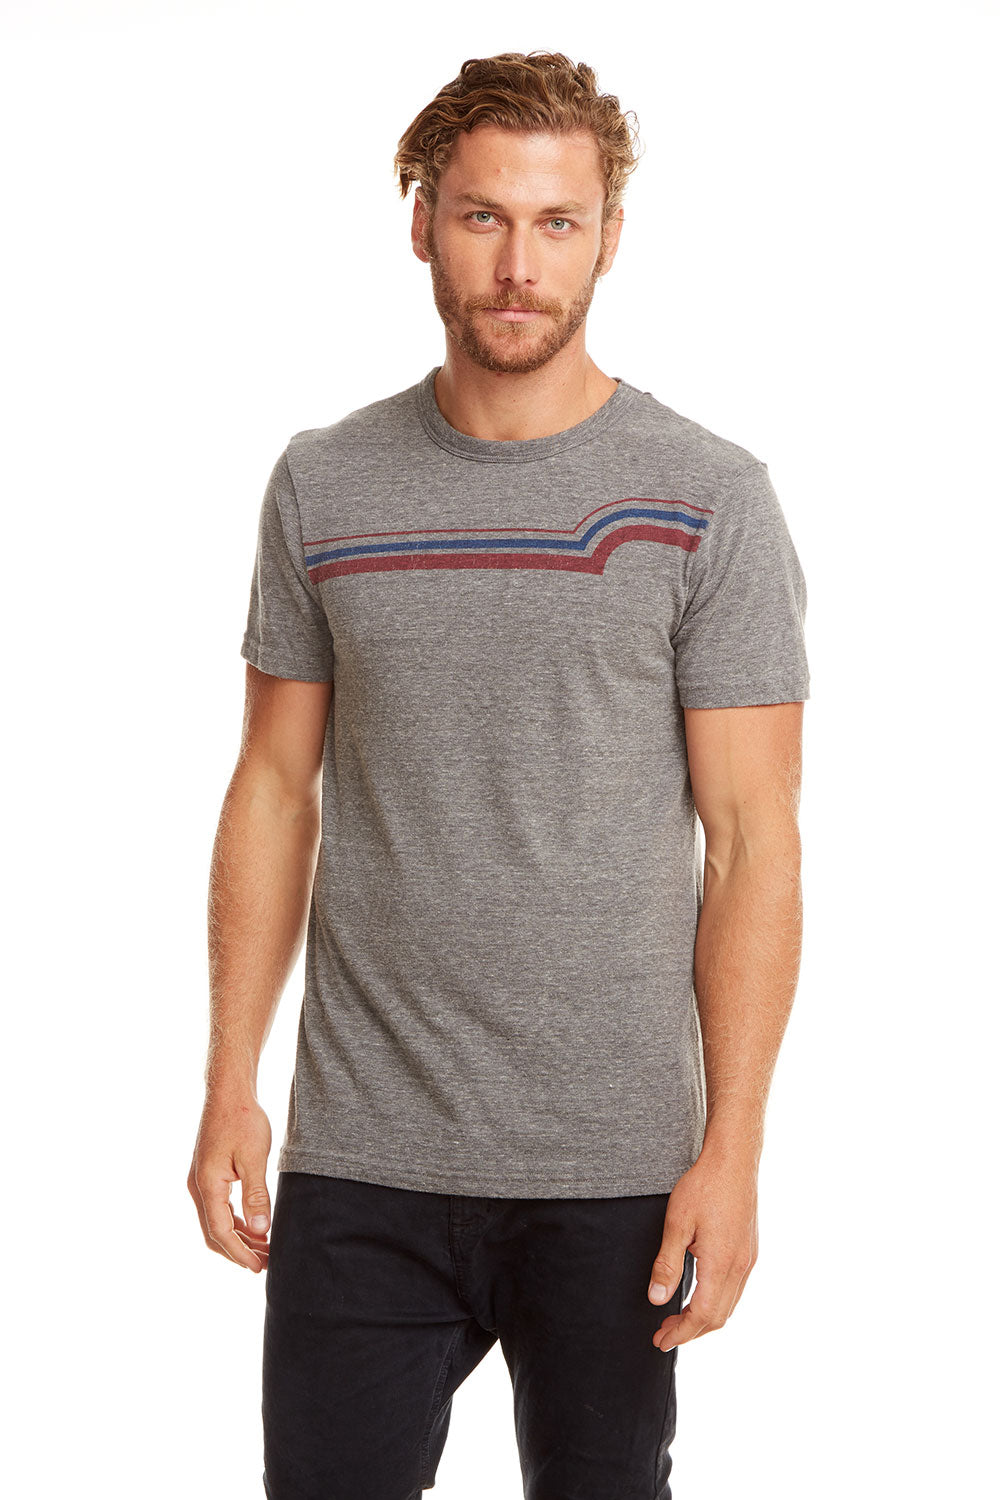 Traveler Stripes, MENS, chaserbrand.com,chaser clothing,chaser apparel,chaser los angeles